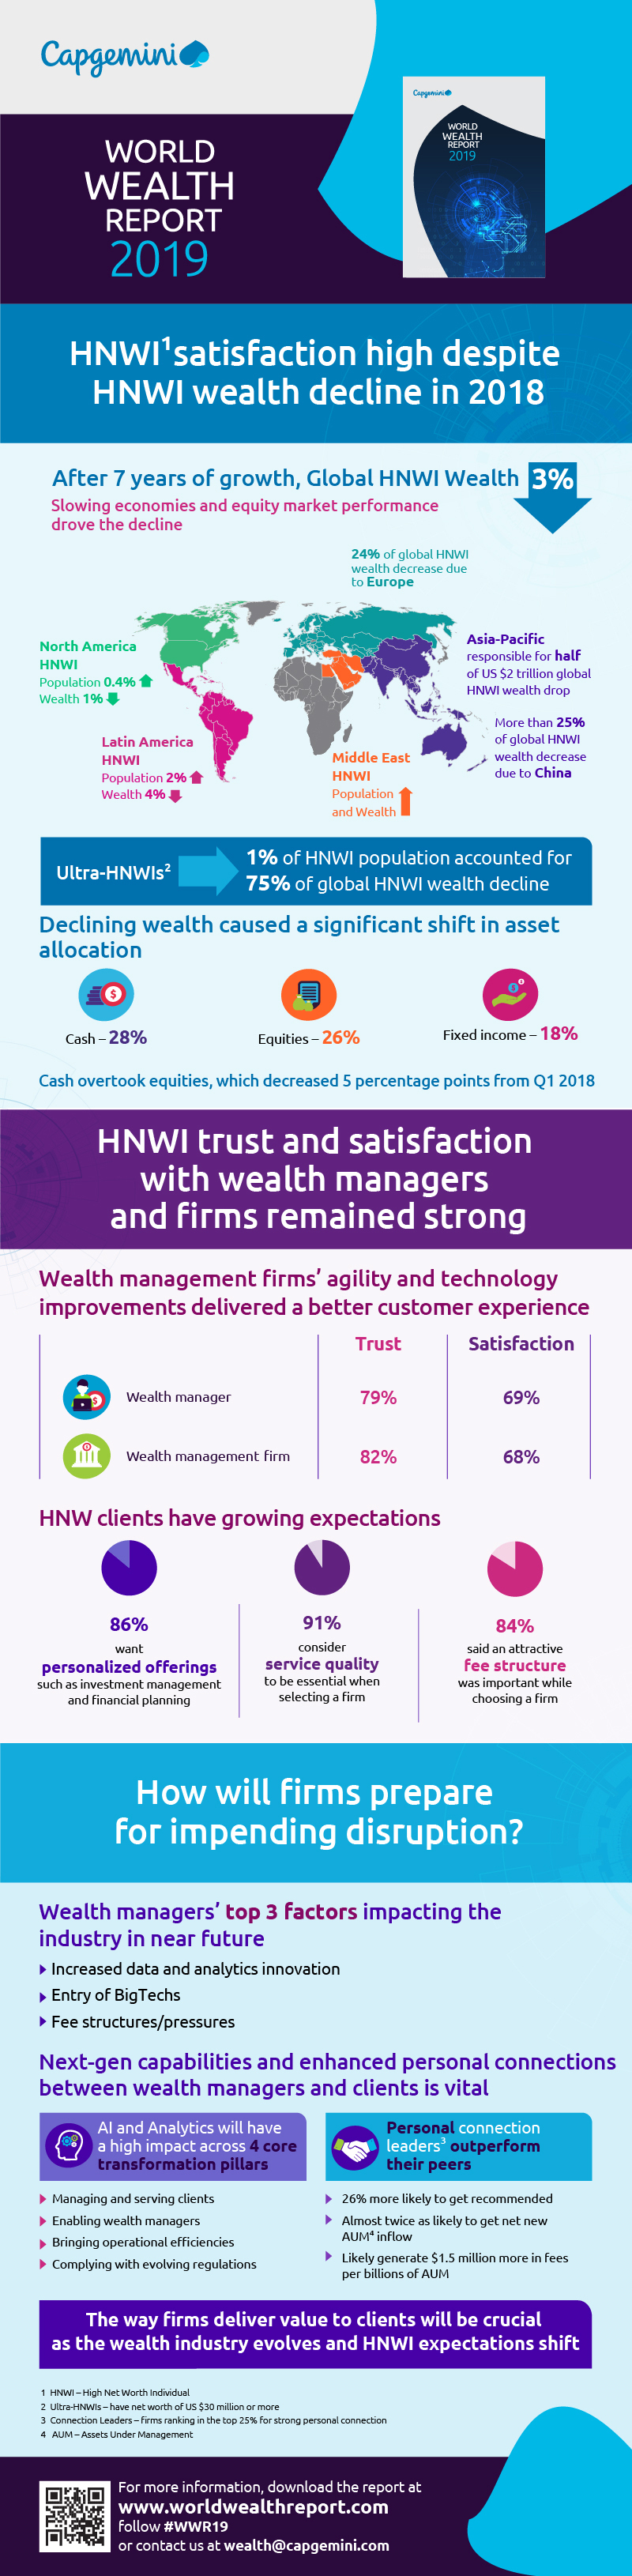 Capgemini's World Wealth Report 2019: With a loss of 2